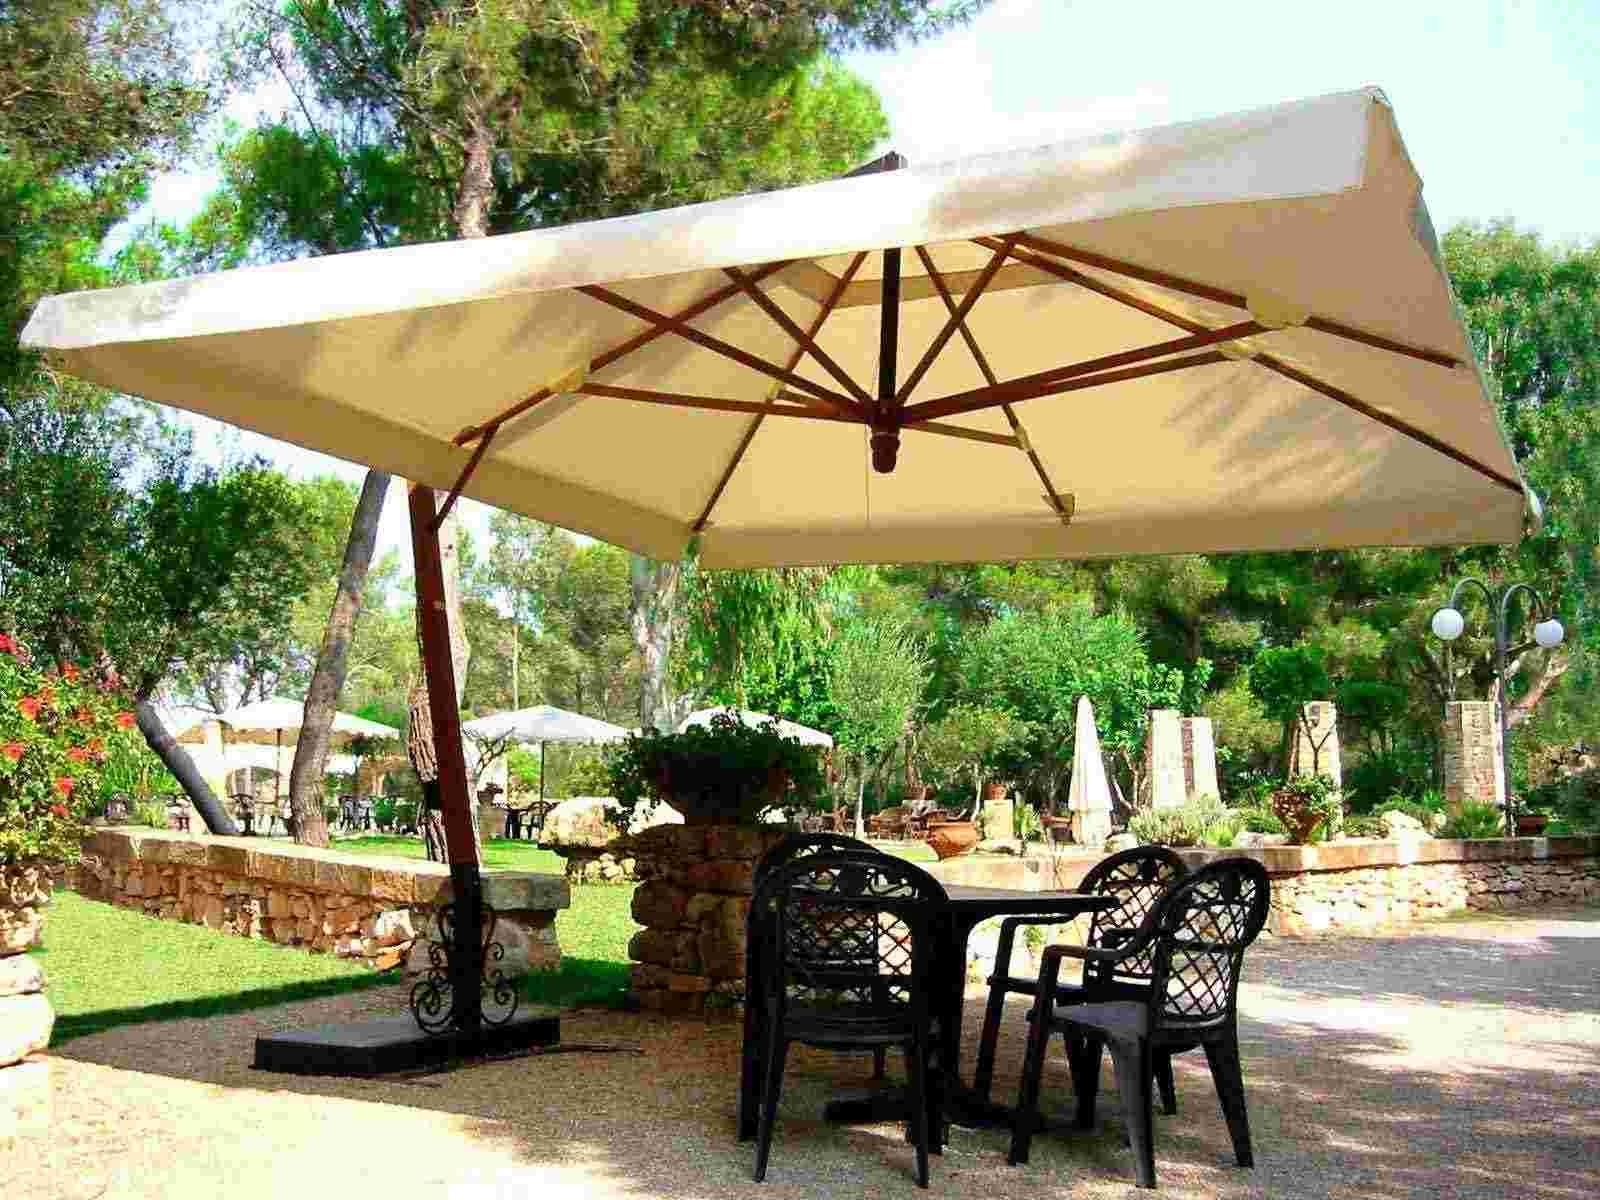 Well Known Different Types Of Patio Umbrellas – Virily Intended For Patio Umbrellas With Wheels (View 19 of 20)